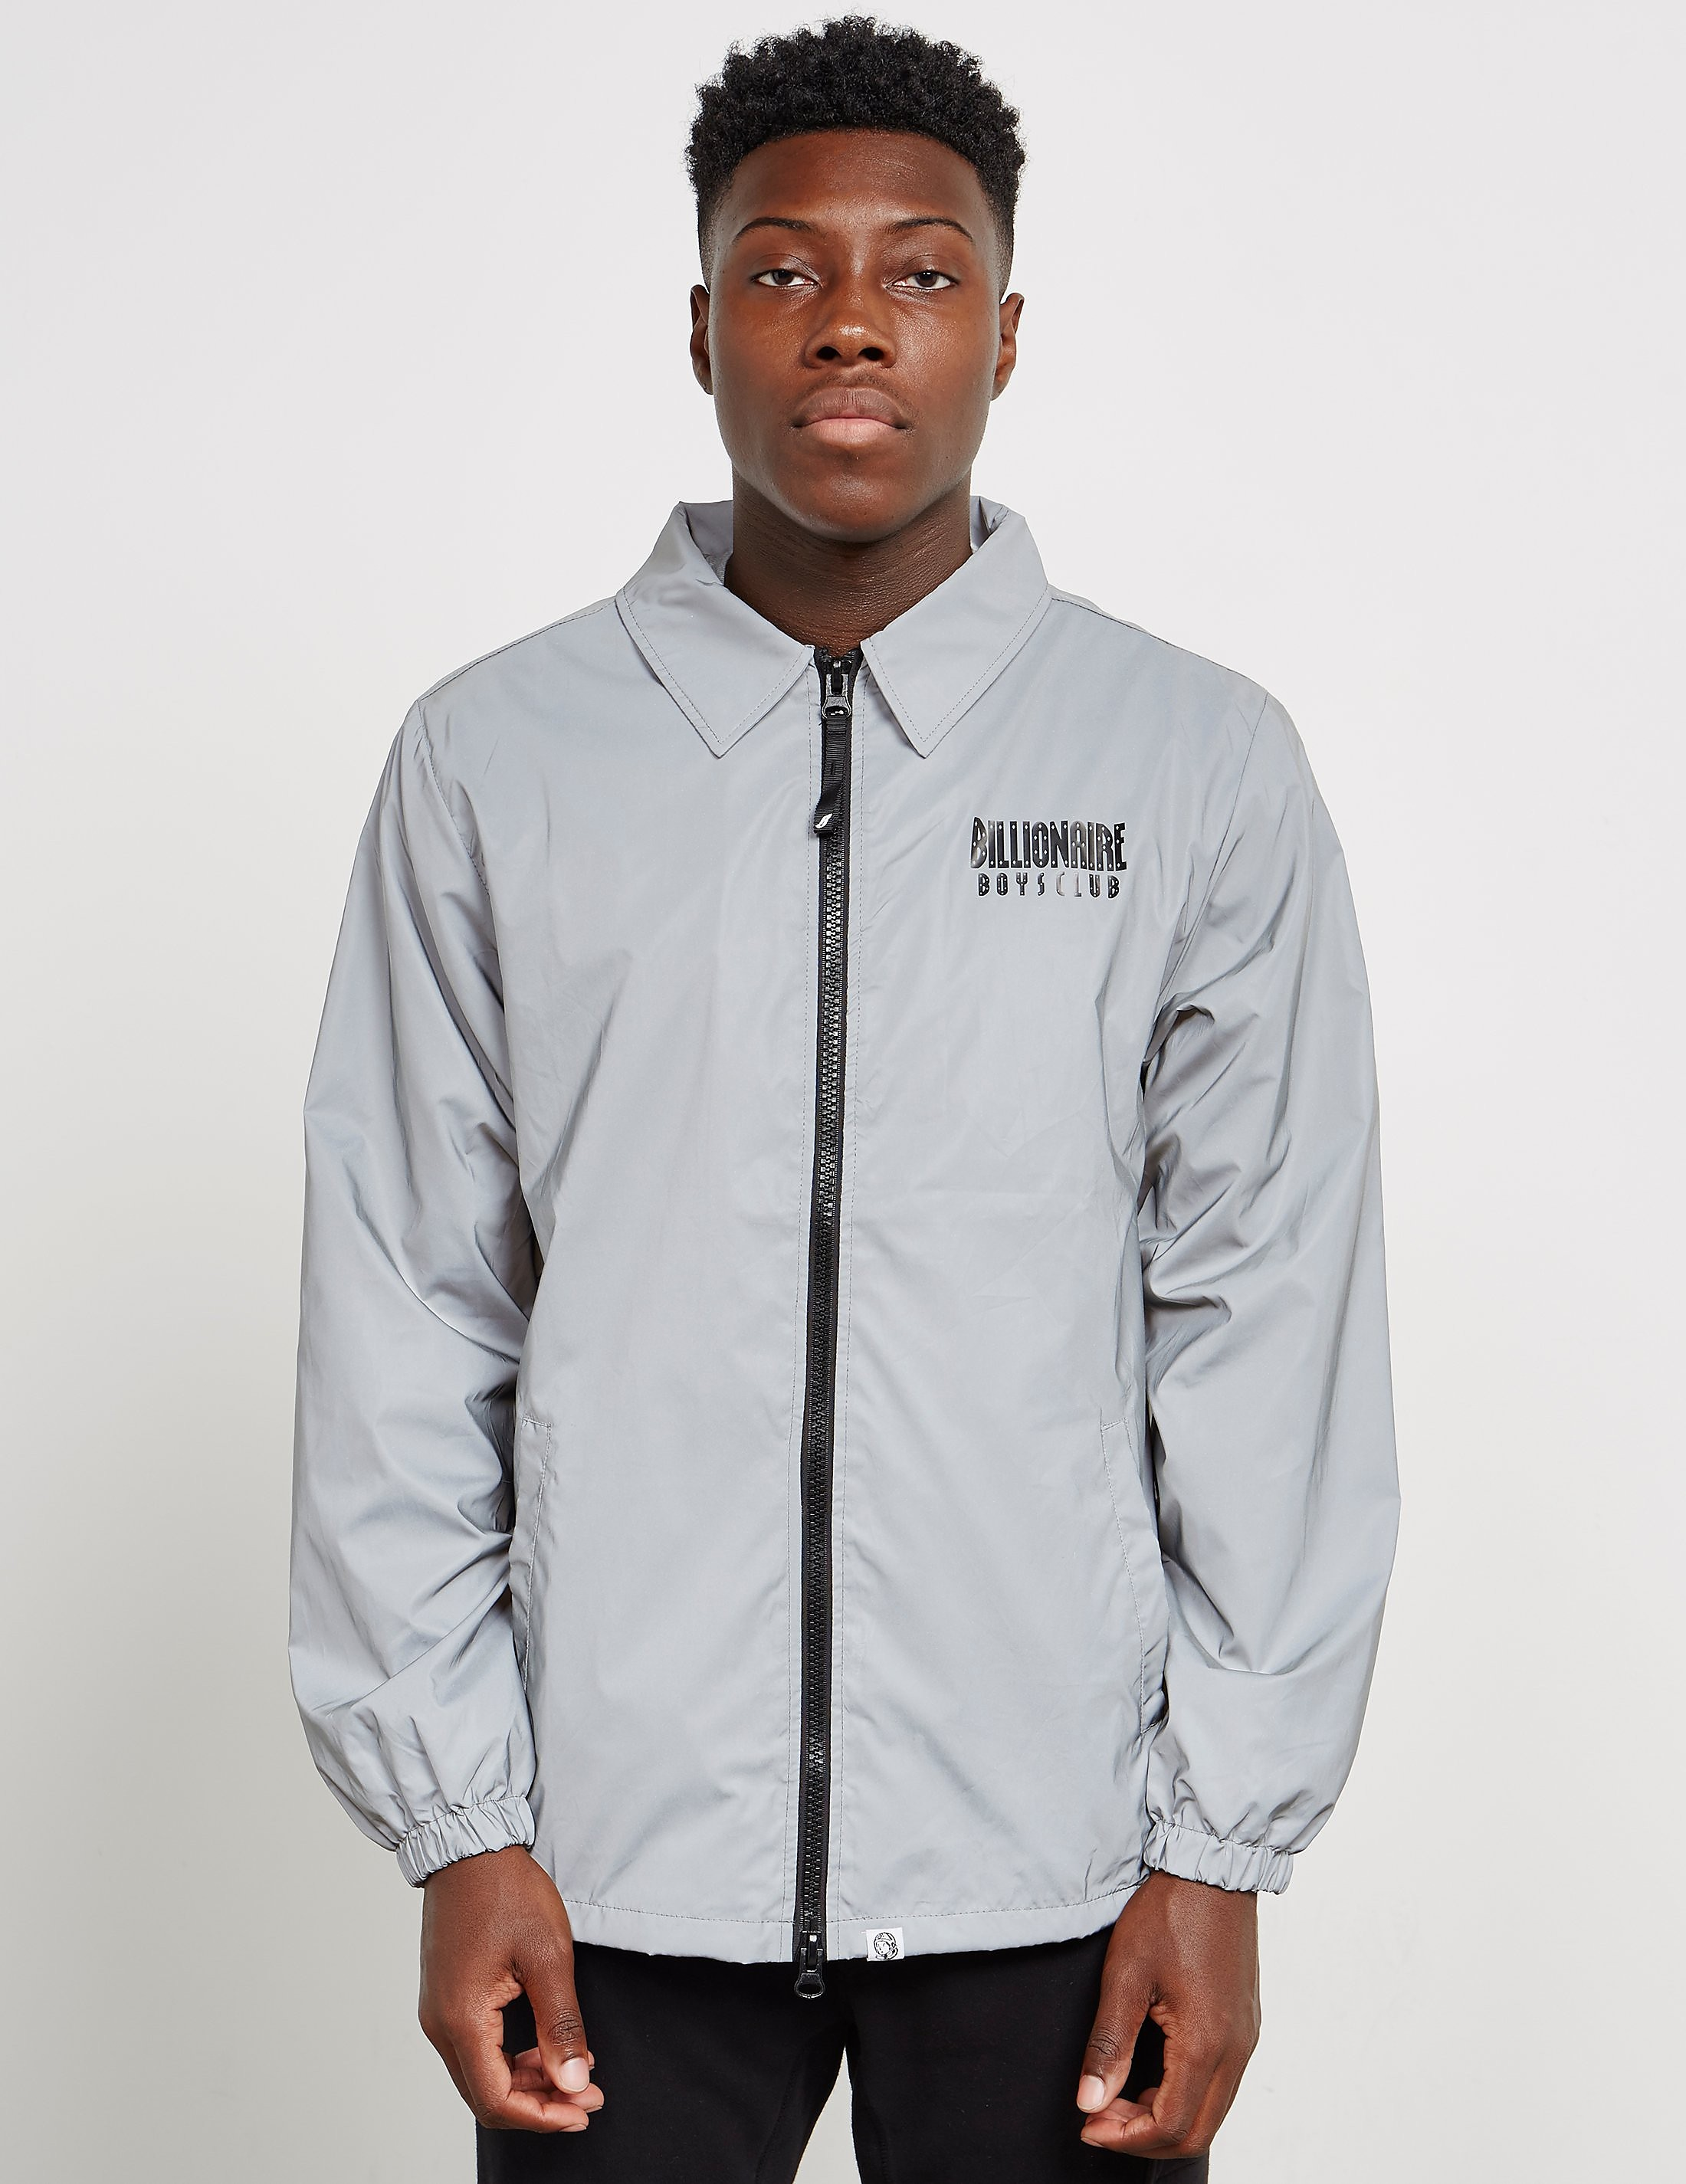 Billionaire Boys Club 3M Lightweight Coach Jacket - Online Exclusive